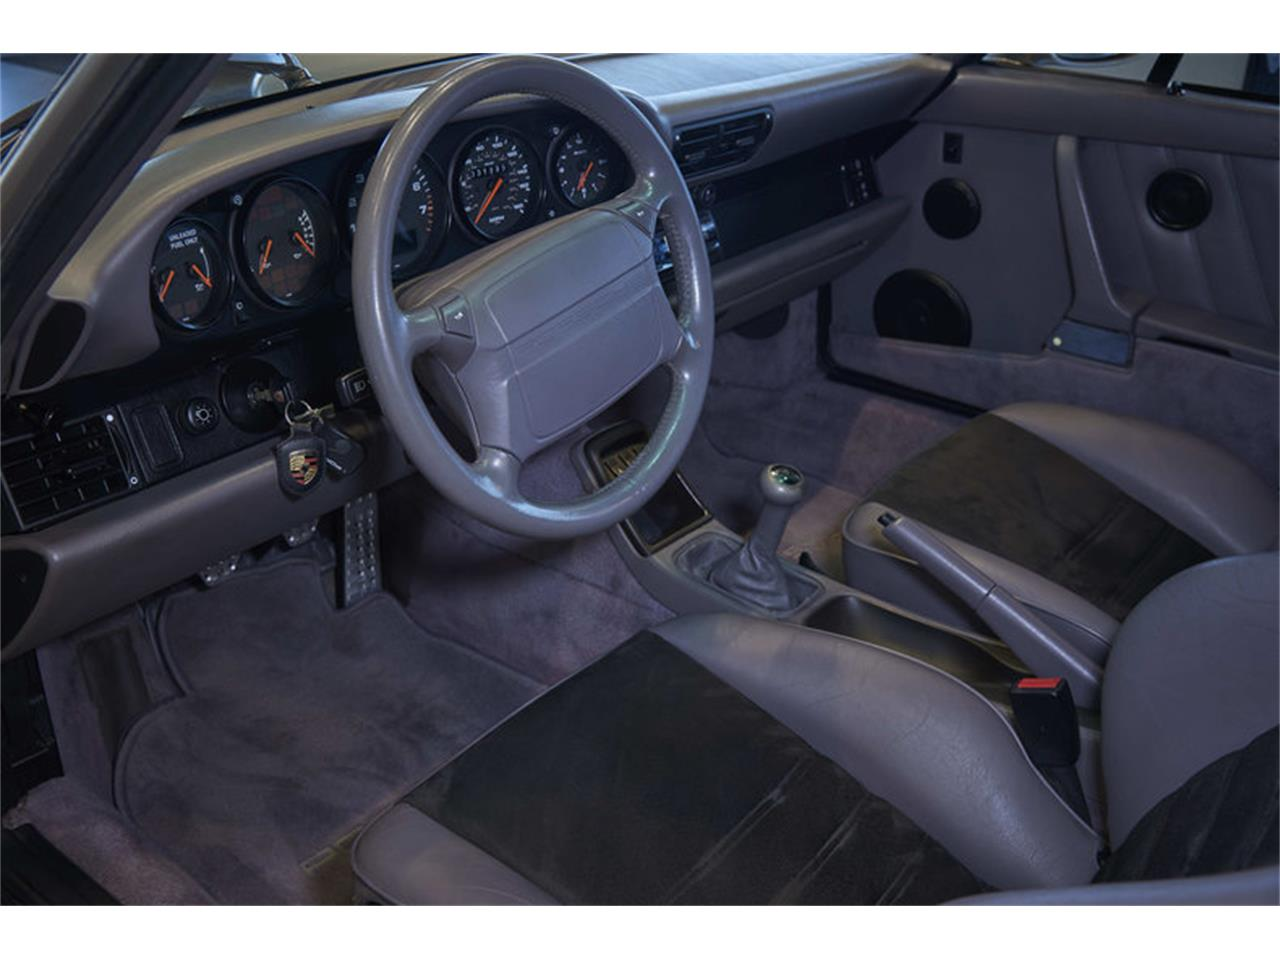 Large Picture of '91 Porsche 911 Turbo Offered by Gaudin Porsche of Las Vegas - LIVG